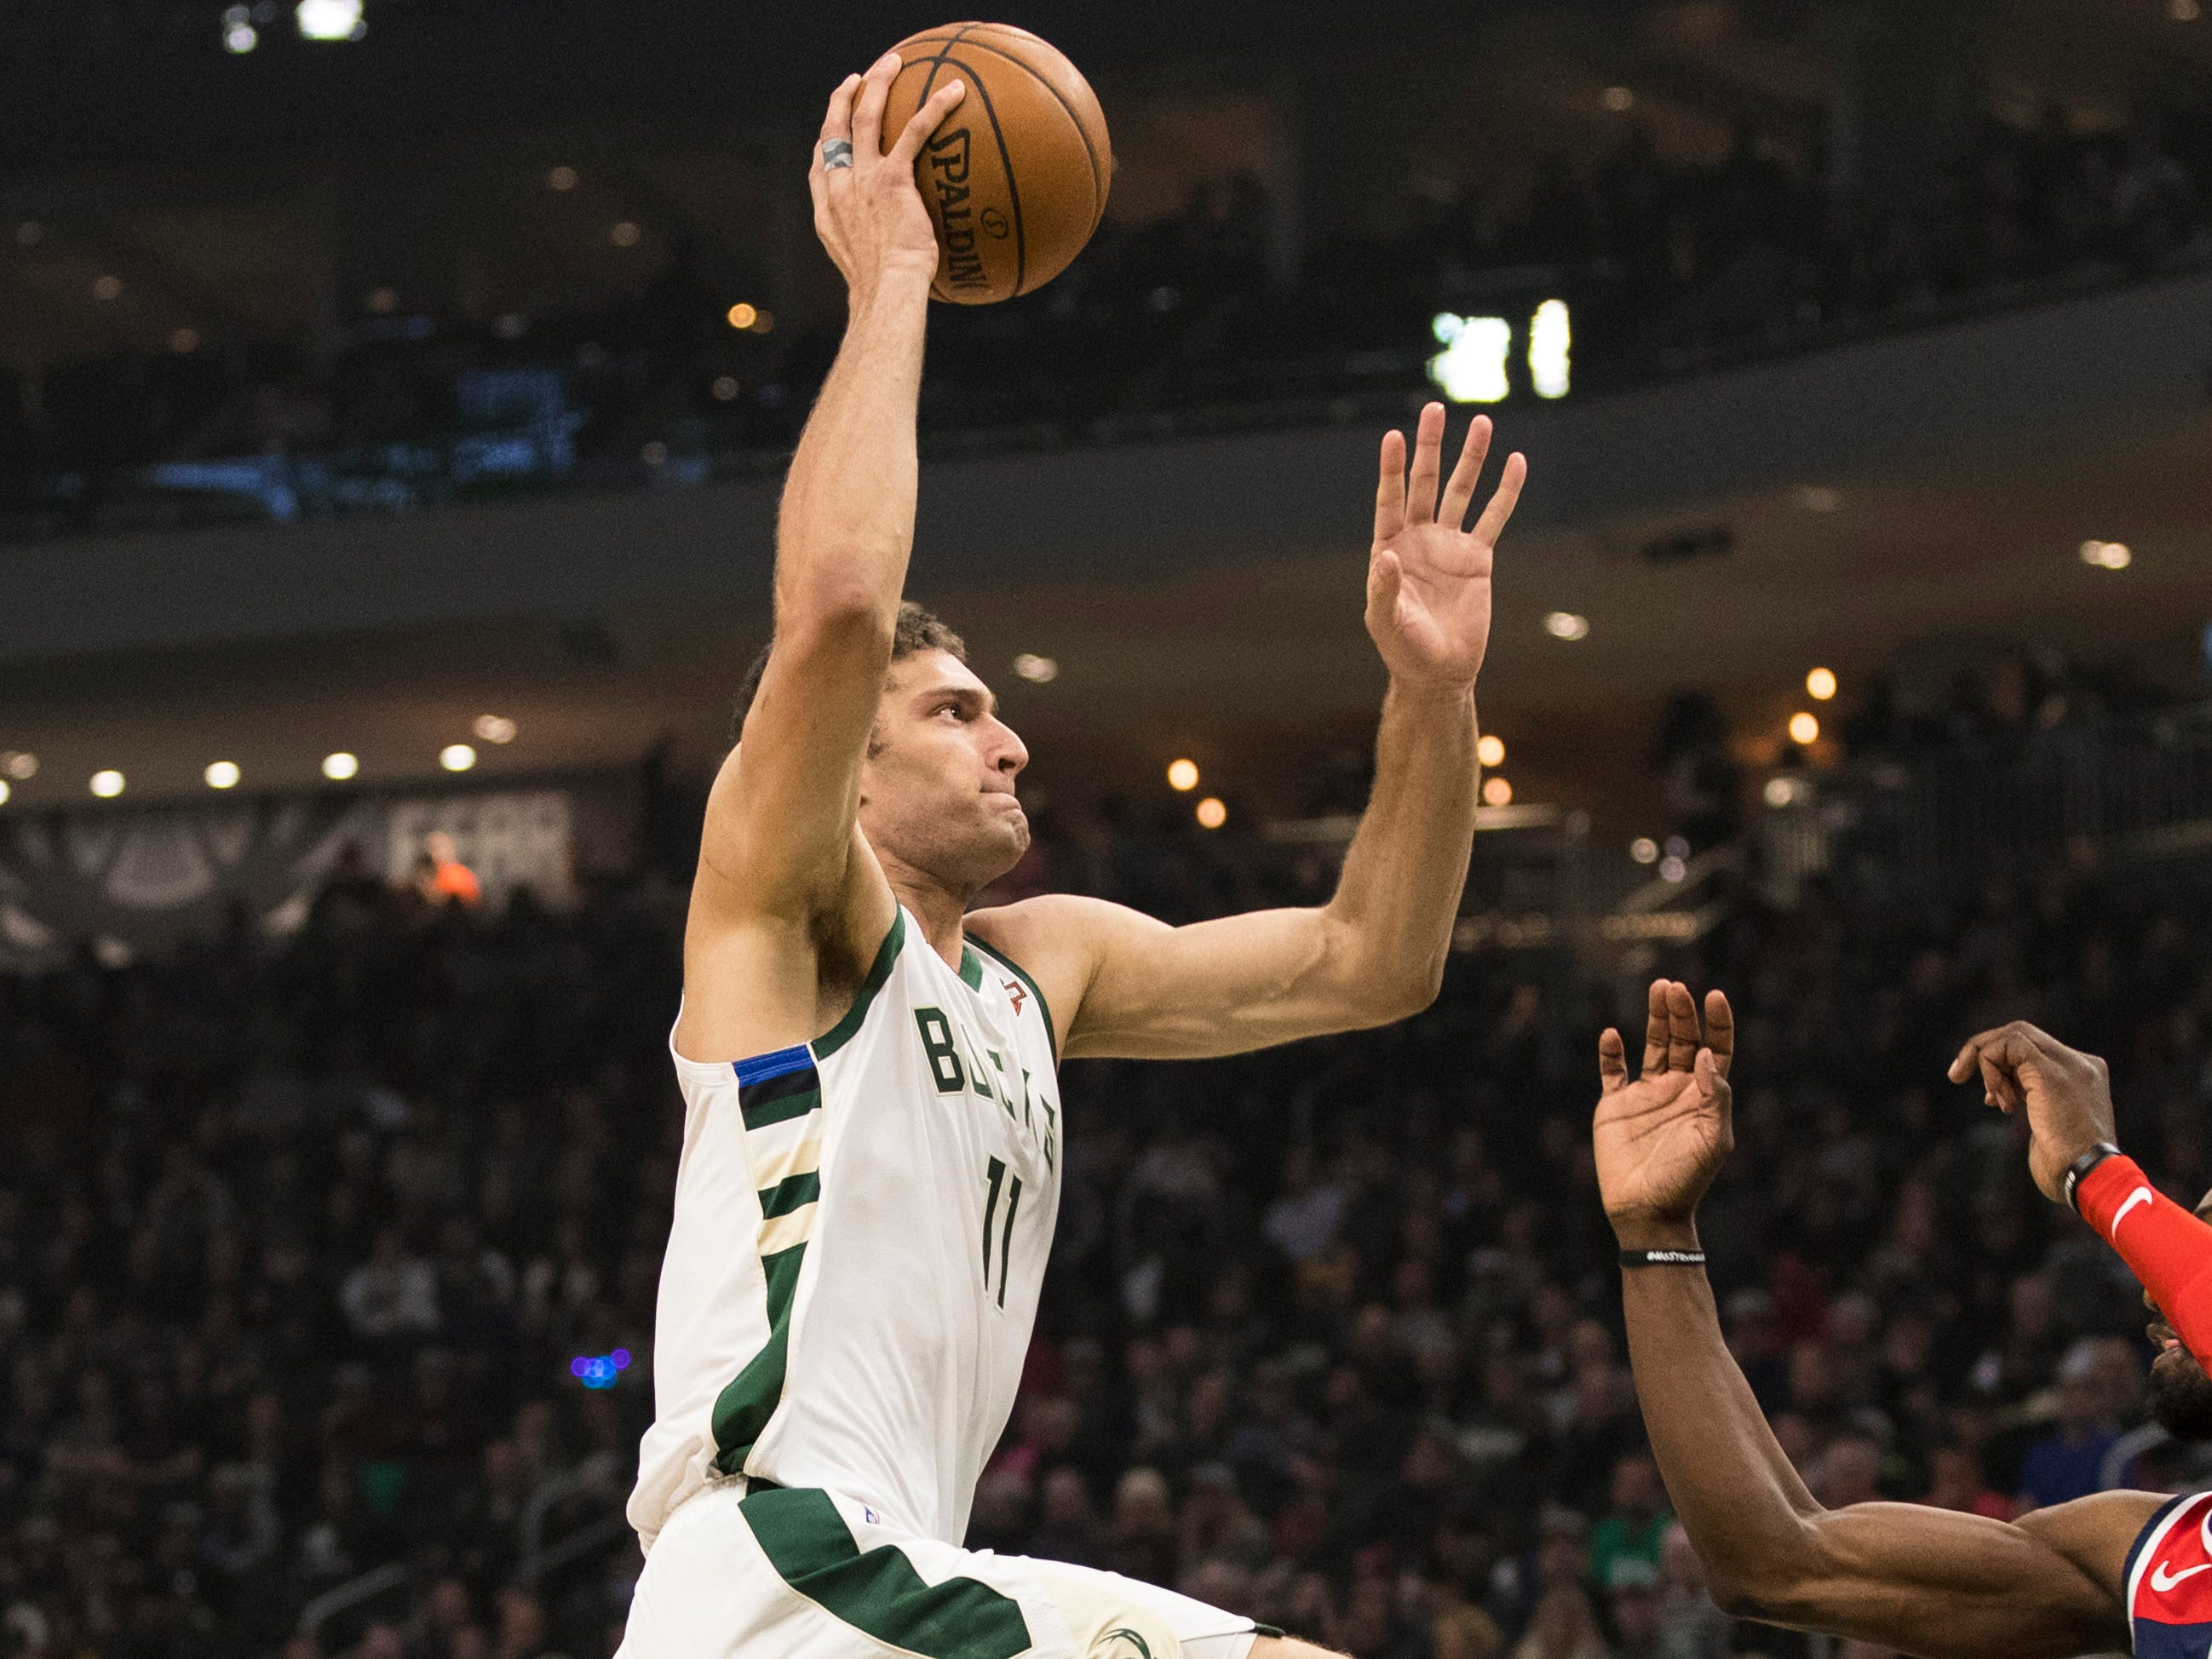 Bucks center Brook Lopez gets ready for liftoff as he prepares to slam home two points against the Wizards on Wednesday night.